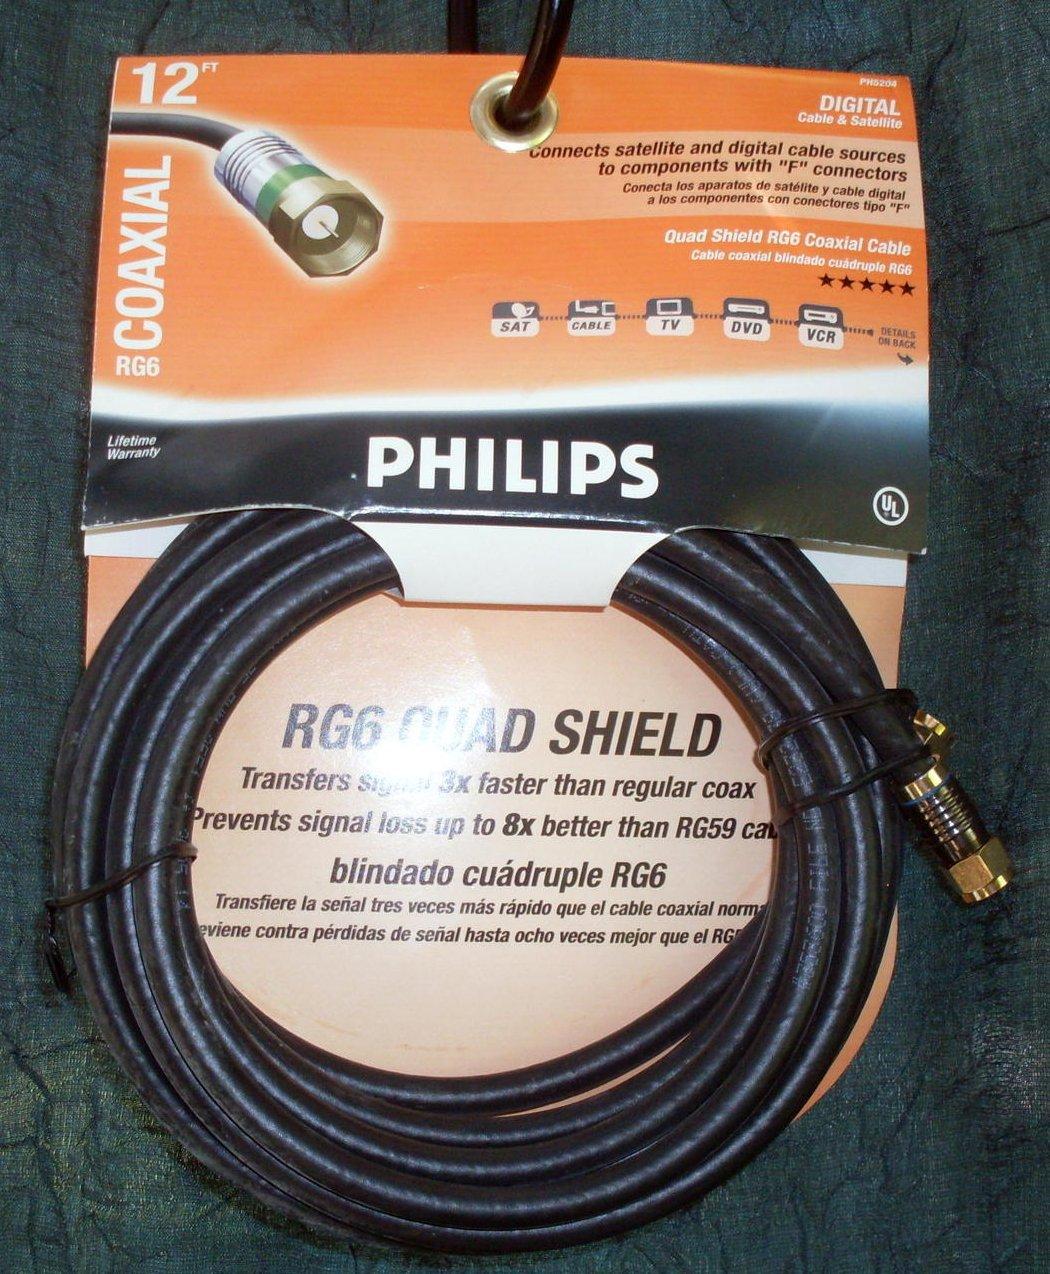 Coaxial Cable Philips PH5204 12 feet Quad Shield RG6 NIP